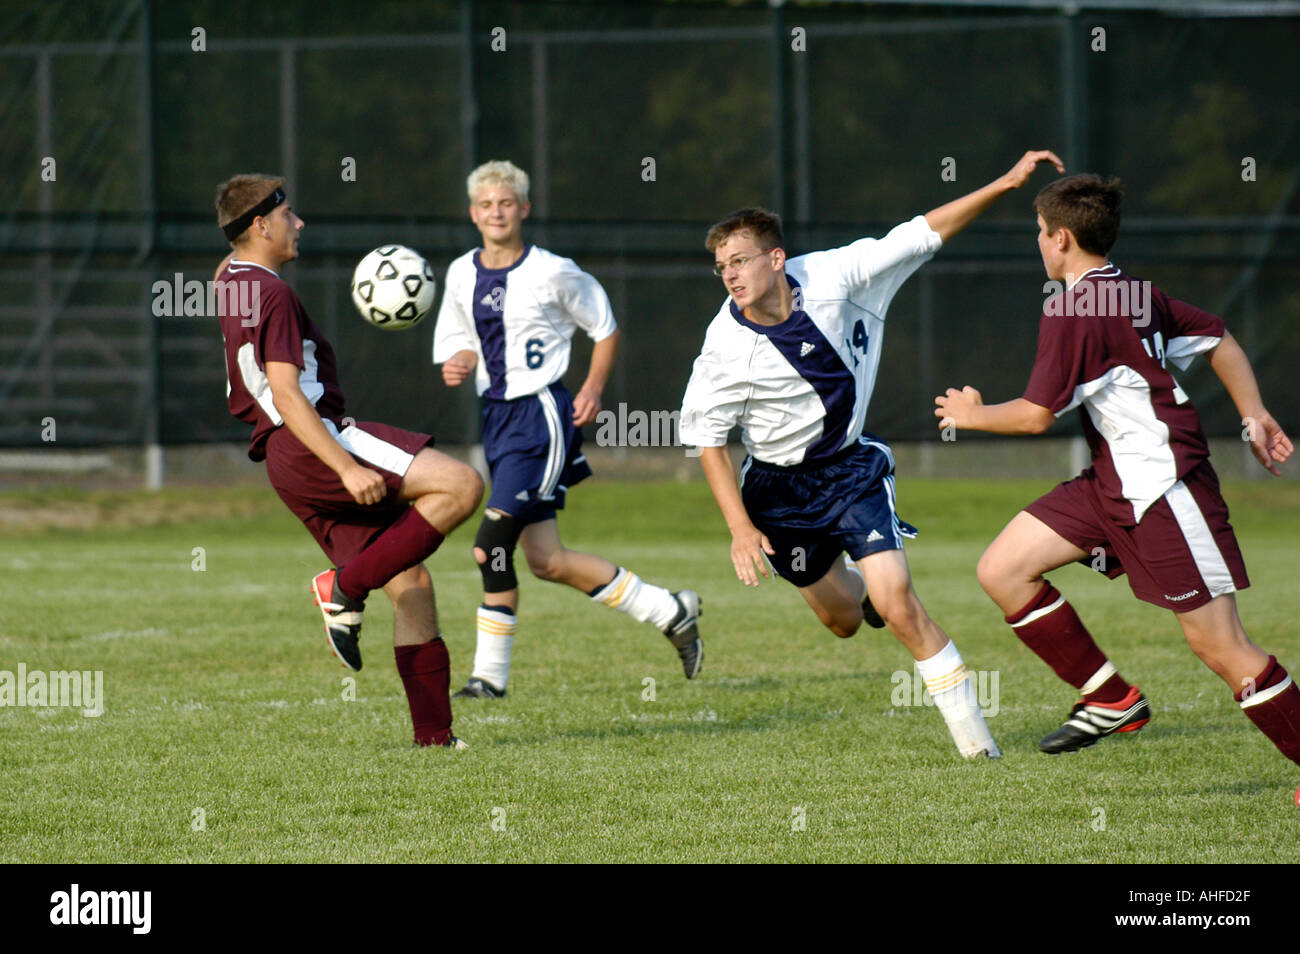 High School-Fußball-Fußball-Action Stockbild